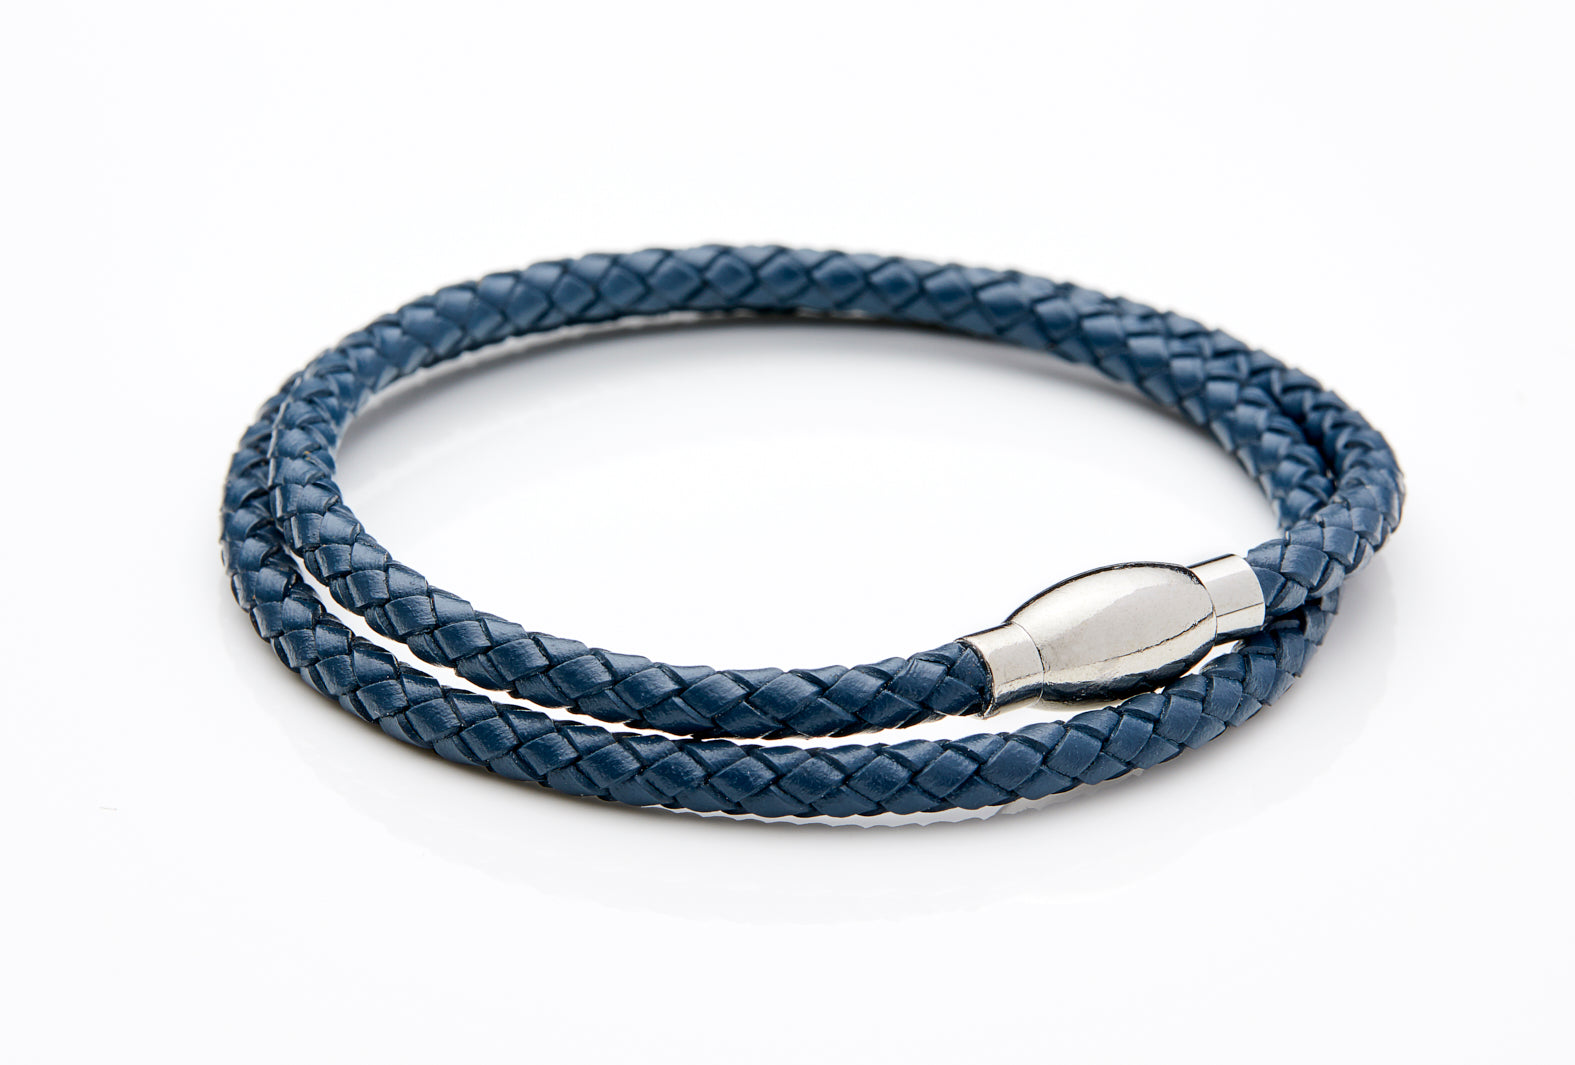 Navy Blue Braided Leather Wrap Bracelet